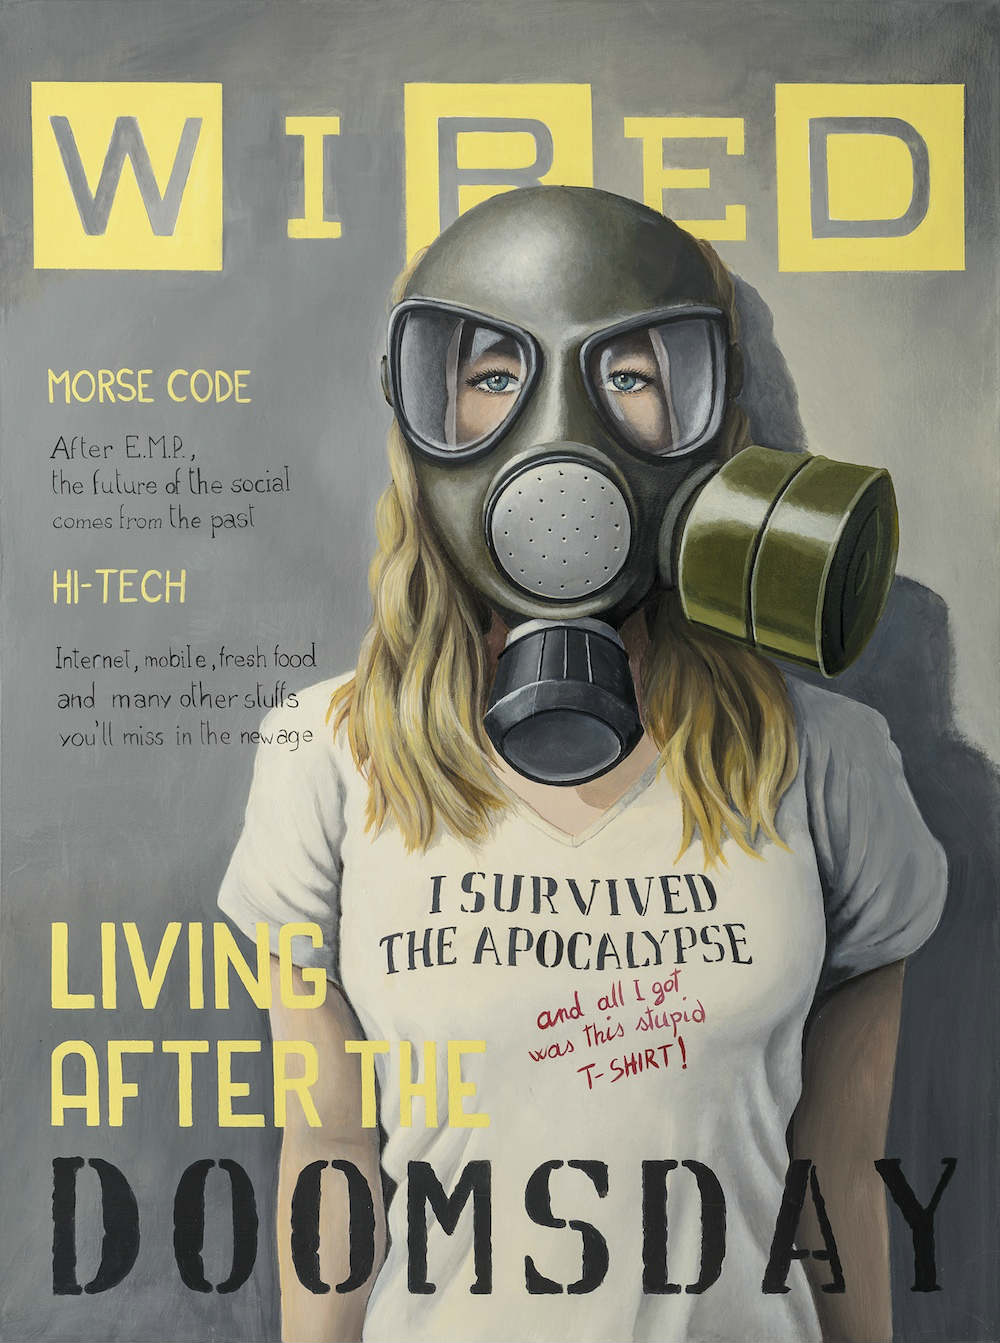 stefano-gentile-mostra-stoccarda-wired-apocalypse-issue